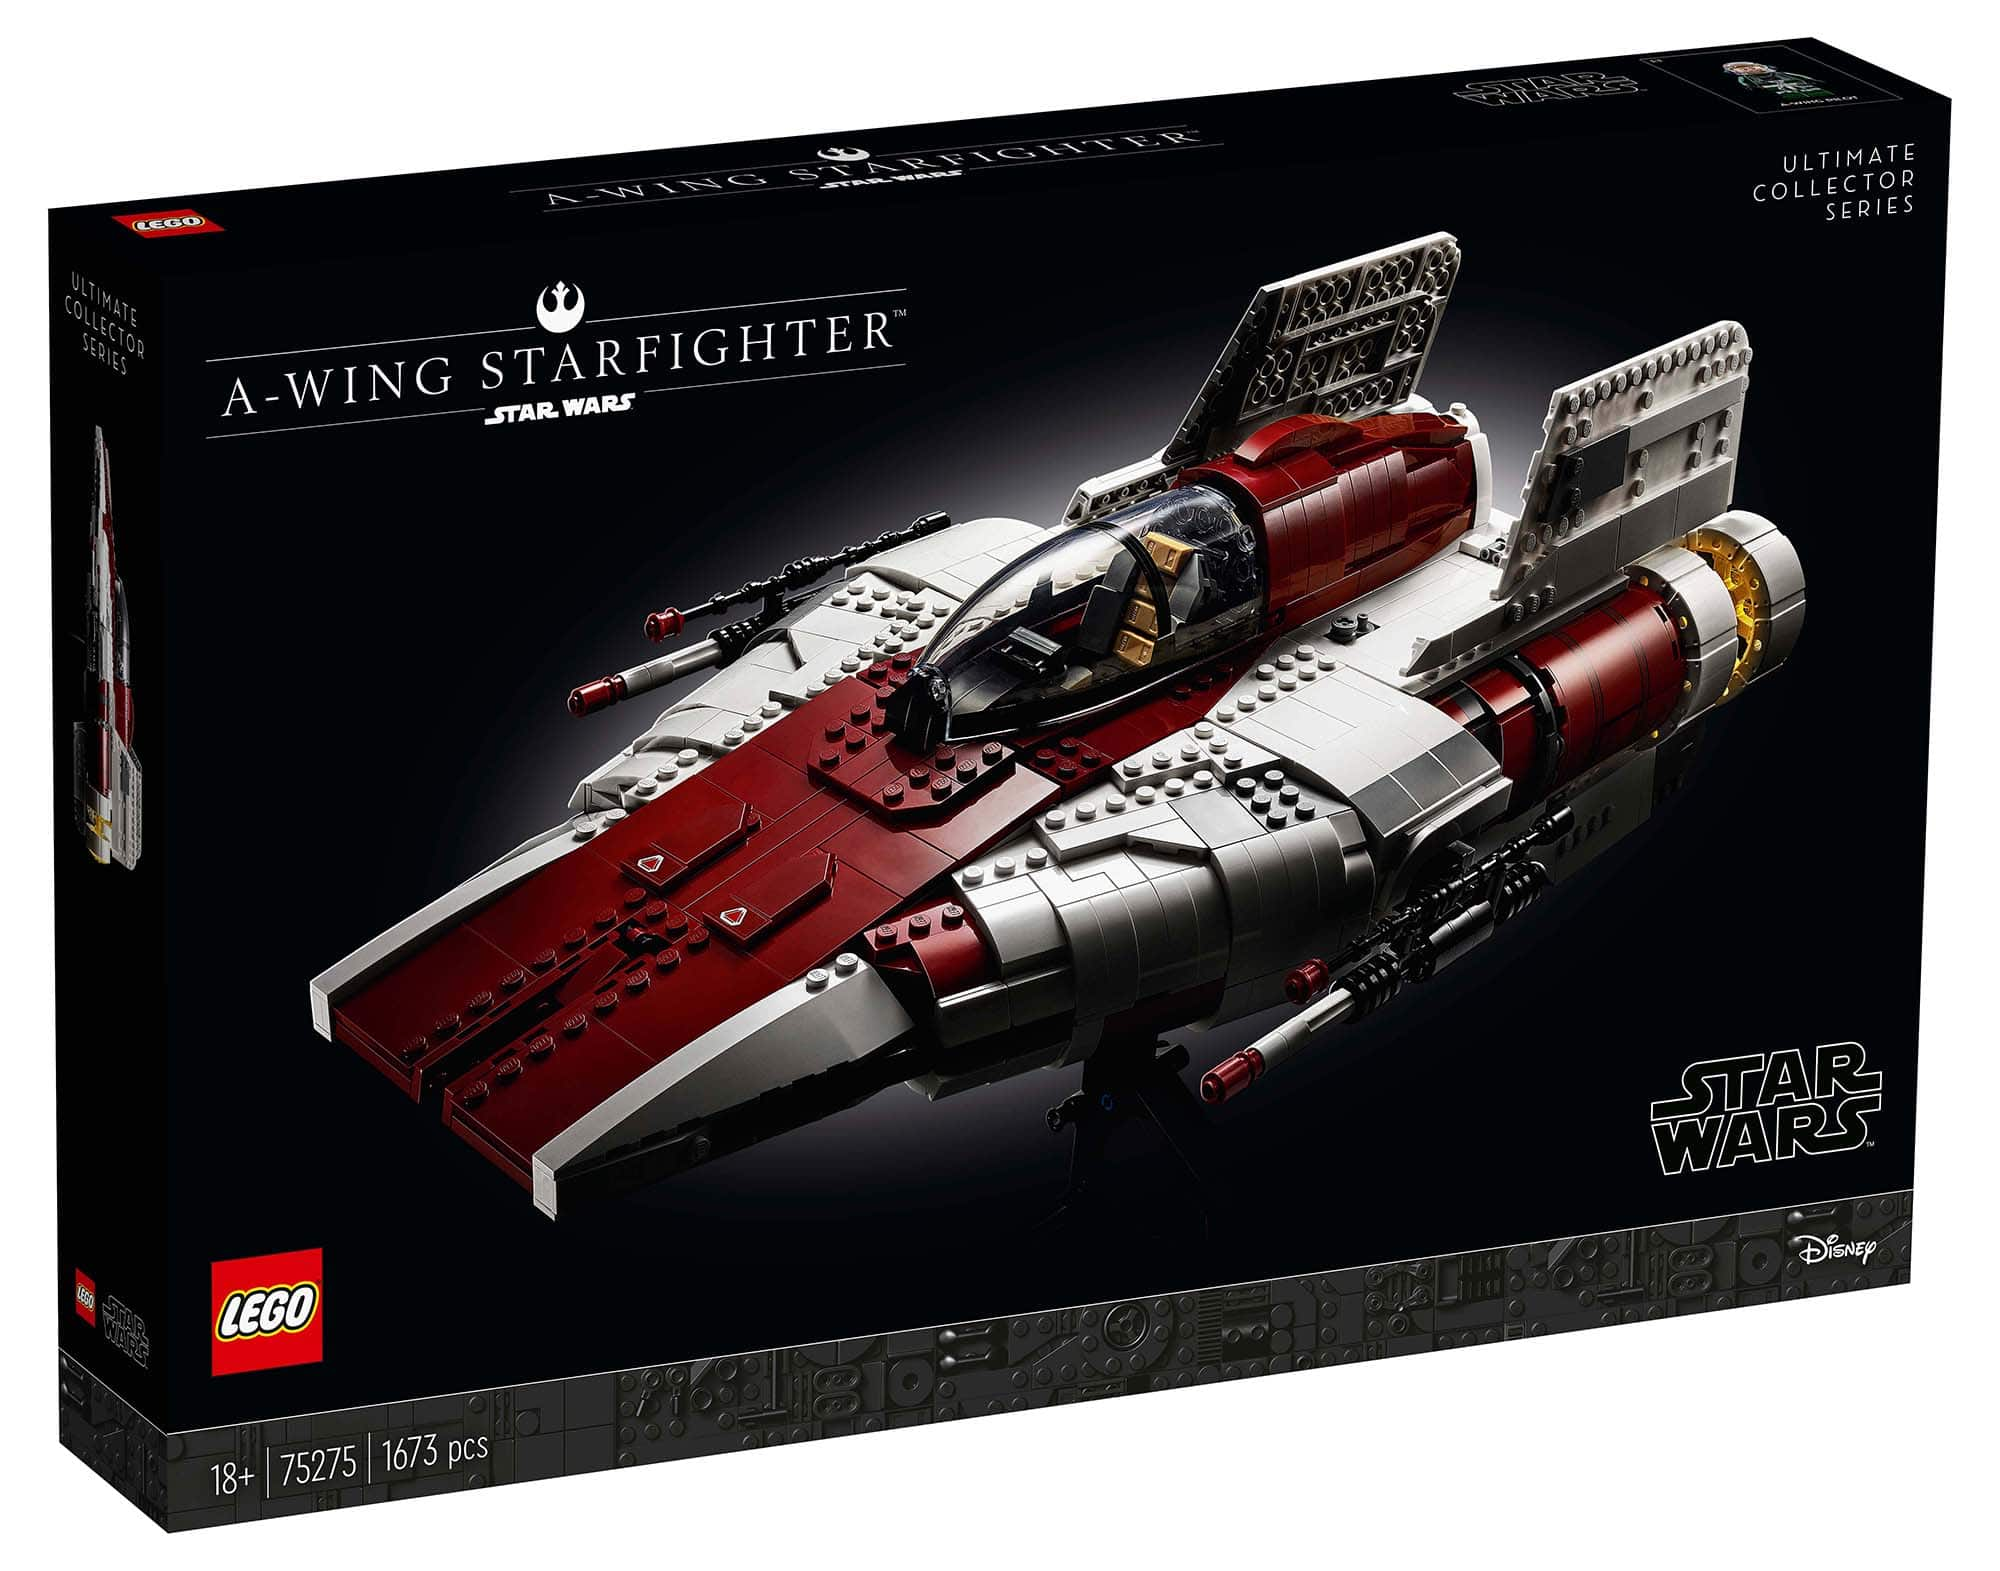 LEGO Star Wars 75275 Ultimate Collector Series A-Wing Starfighter